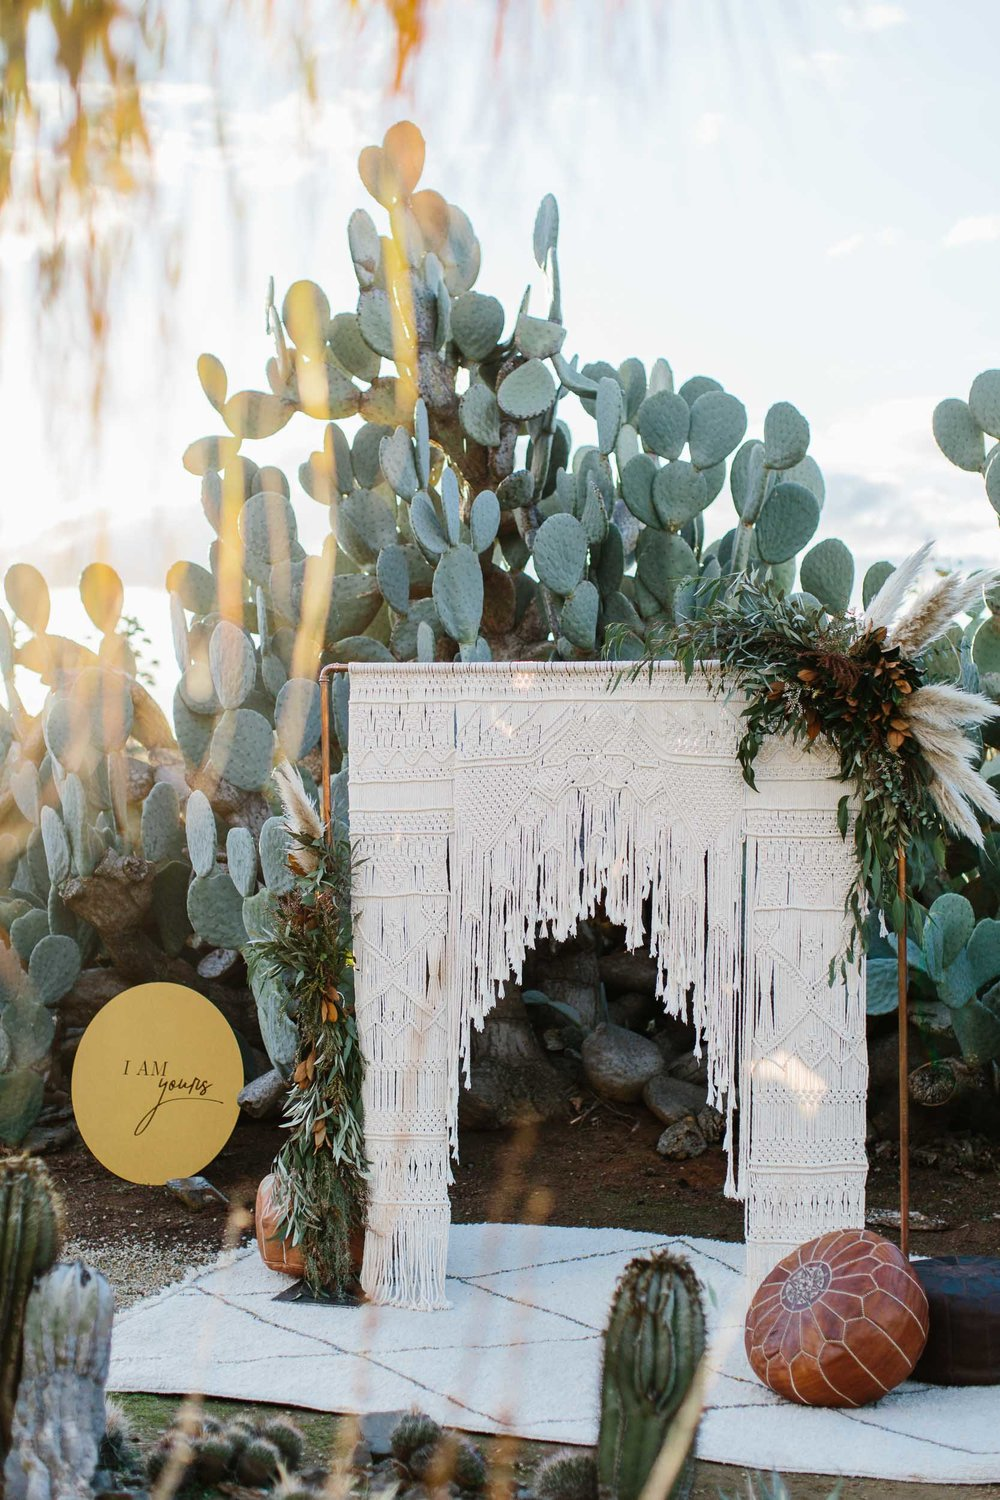 Kas-Richards-Ruby-and-James-Stylist-Cactus-Country-Karen-Willis-Holmes-Bridal-One-Heart-Studios-Boho-Wedding-98.jpg